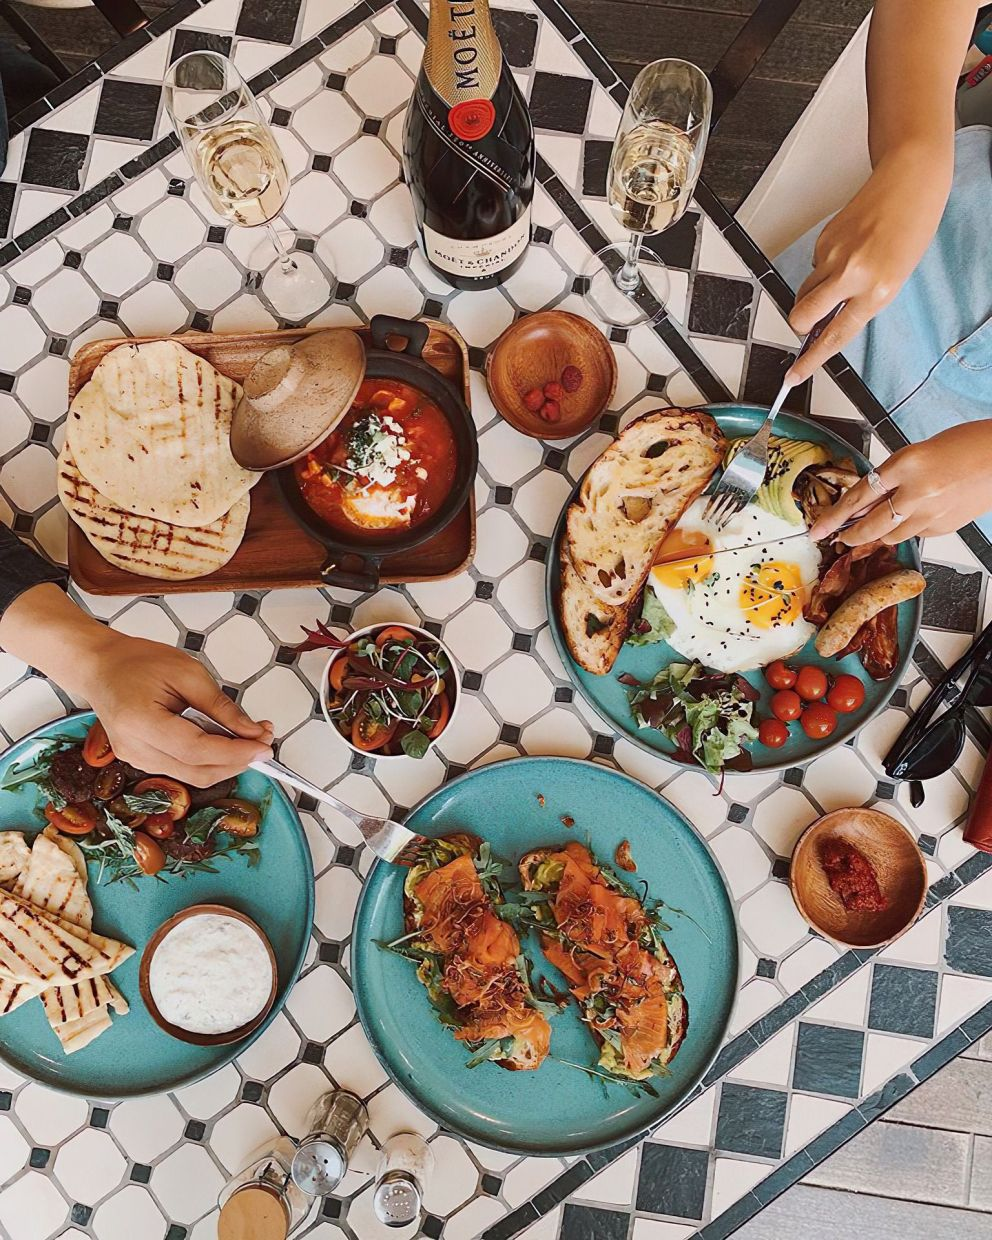 What used to work before - irregular meals, lots of dairy and alcohol - may not work once a woman reaches perimenopause. Learn what works for your bosy, says Dr Premitha.